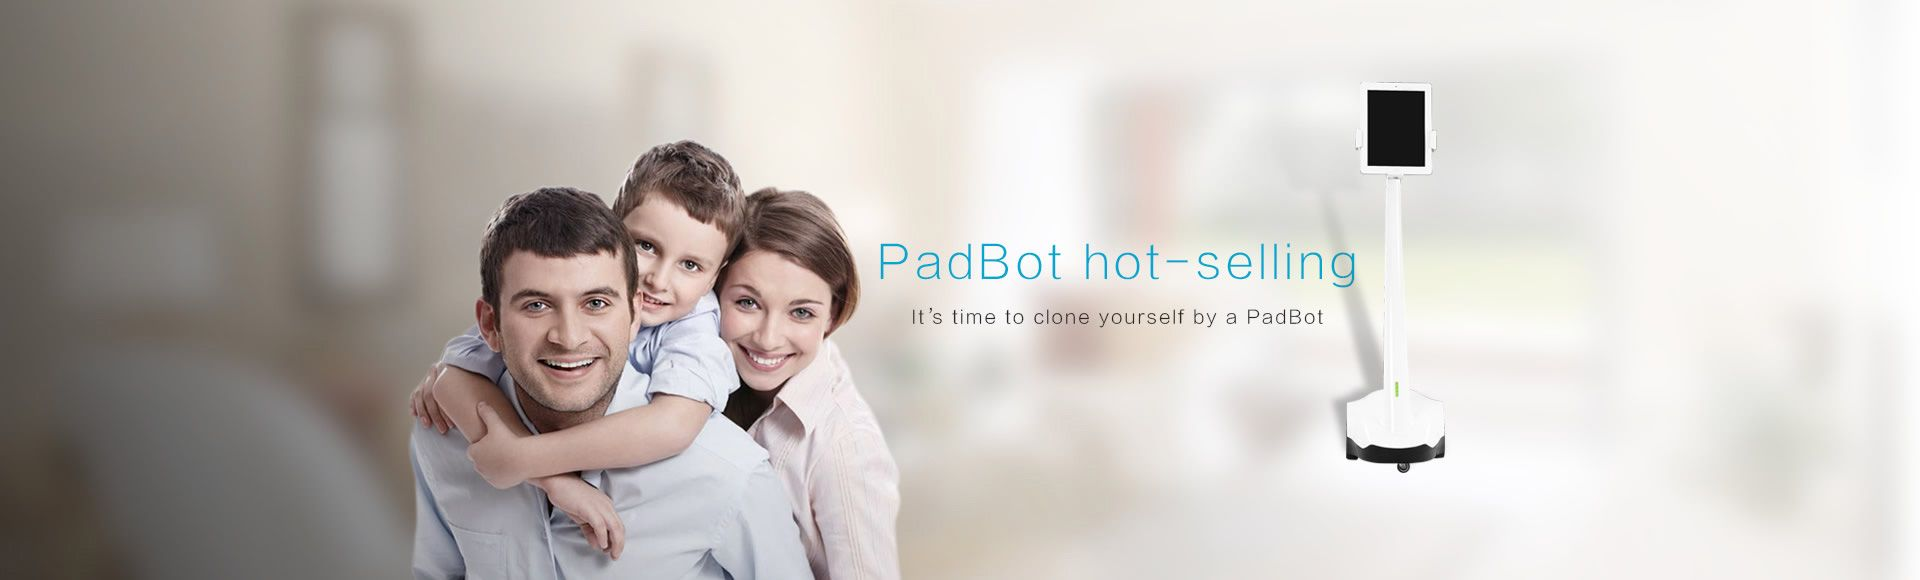 PadBot U Smart Telepresence Robot - Remotely Control via Internet to do a Video Chat Support iPad iPhone Andriod